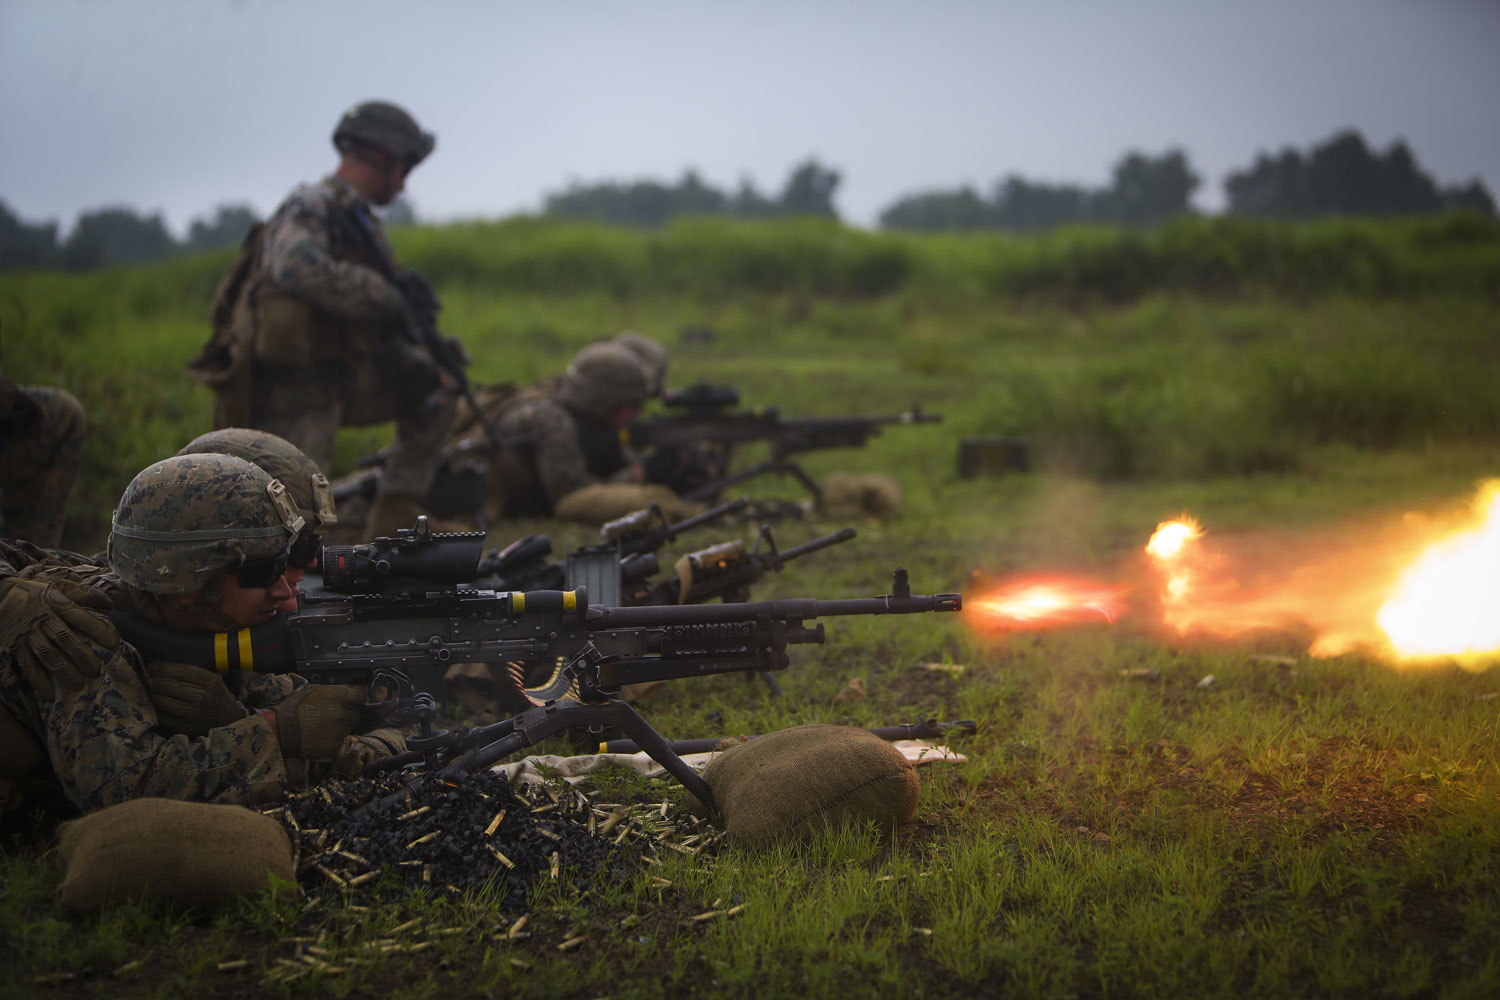 Lance Cpl. Paul D. Dubanski, a Loomis, California native and infantry assault-man assigned to Bravo Company, 1st Battalion, 3rd Marine Regiment, fires the M240B medium machine gun down range during Exercise Fuji Viper aboard Camp Fuji, Japan.